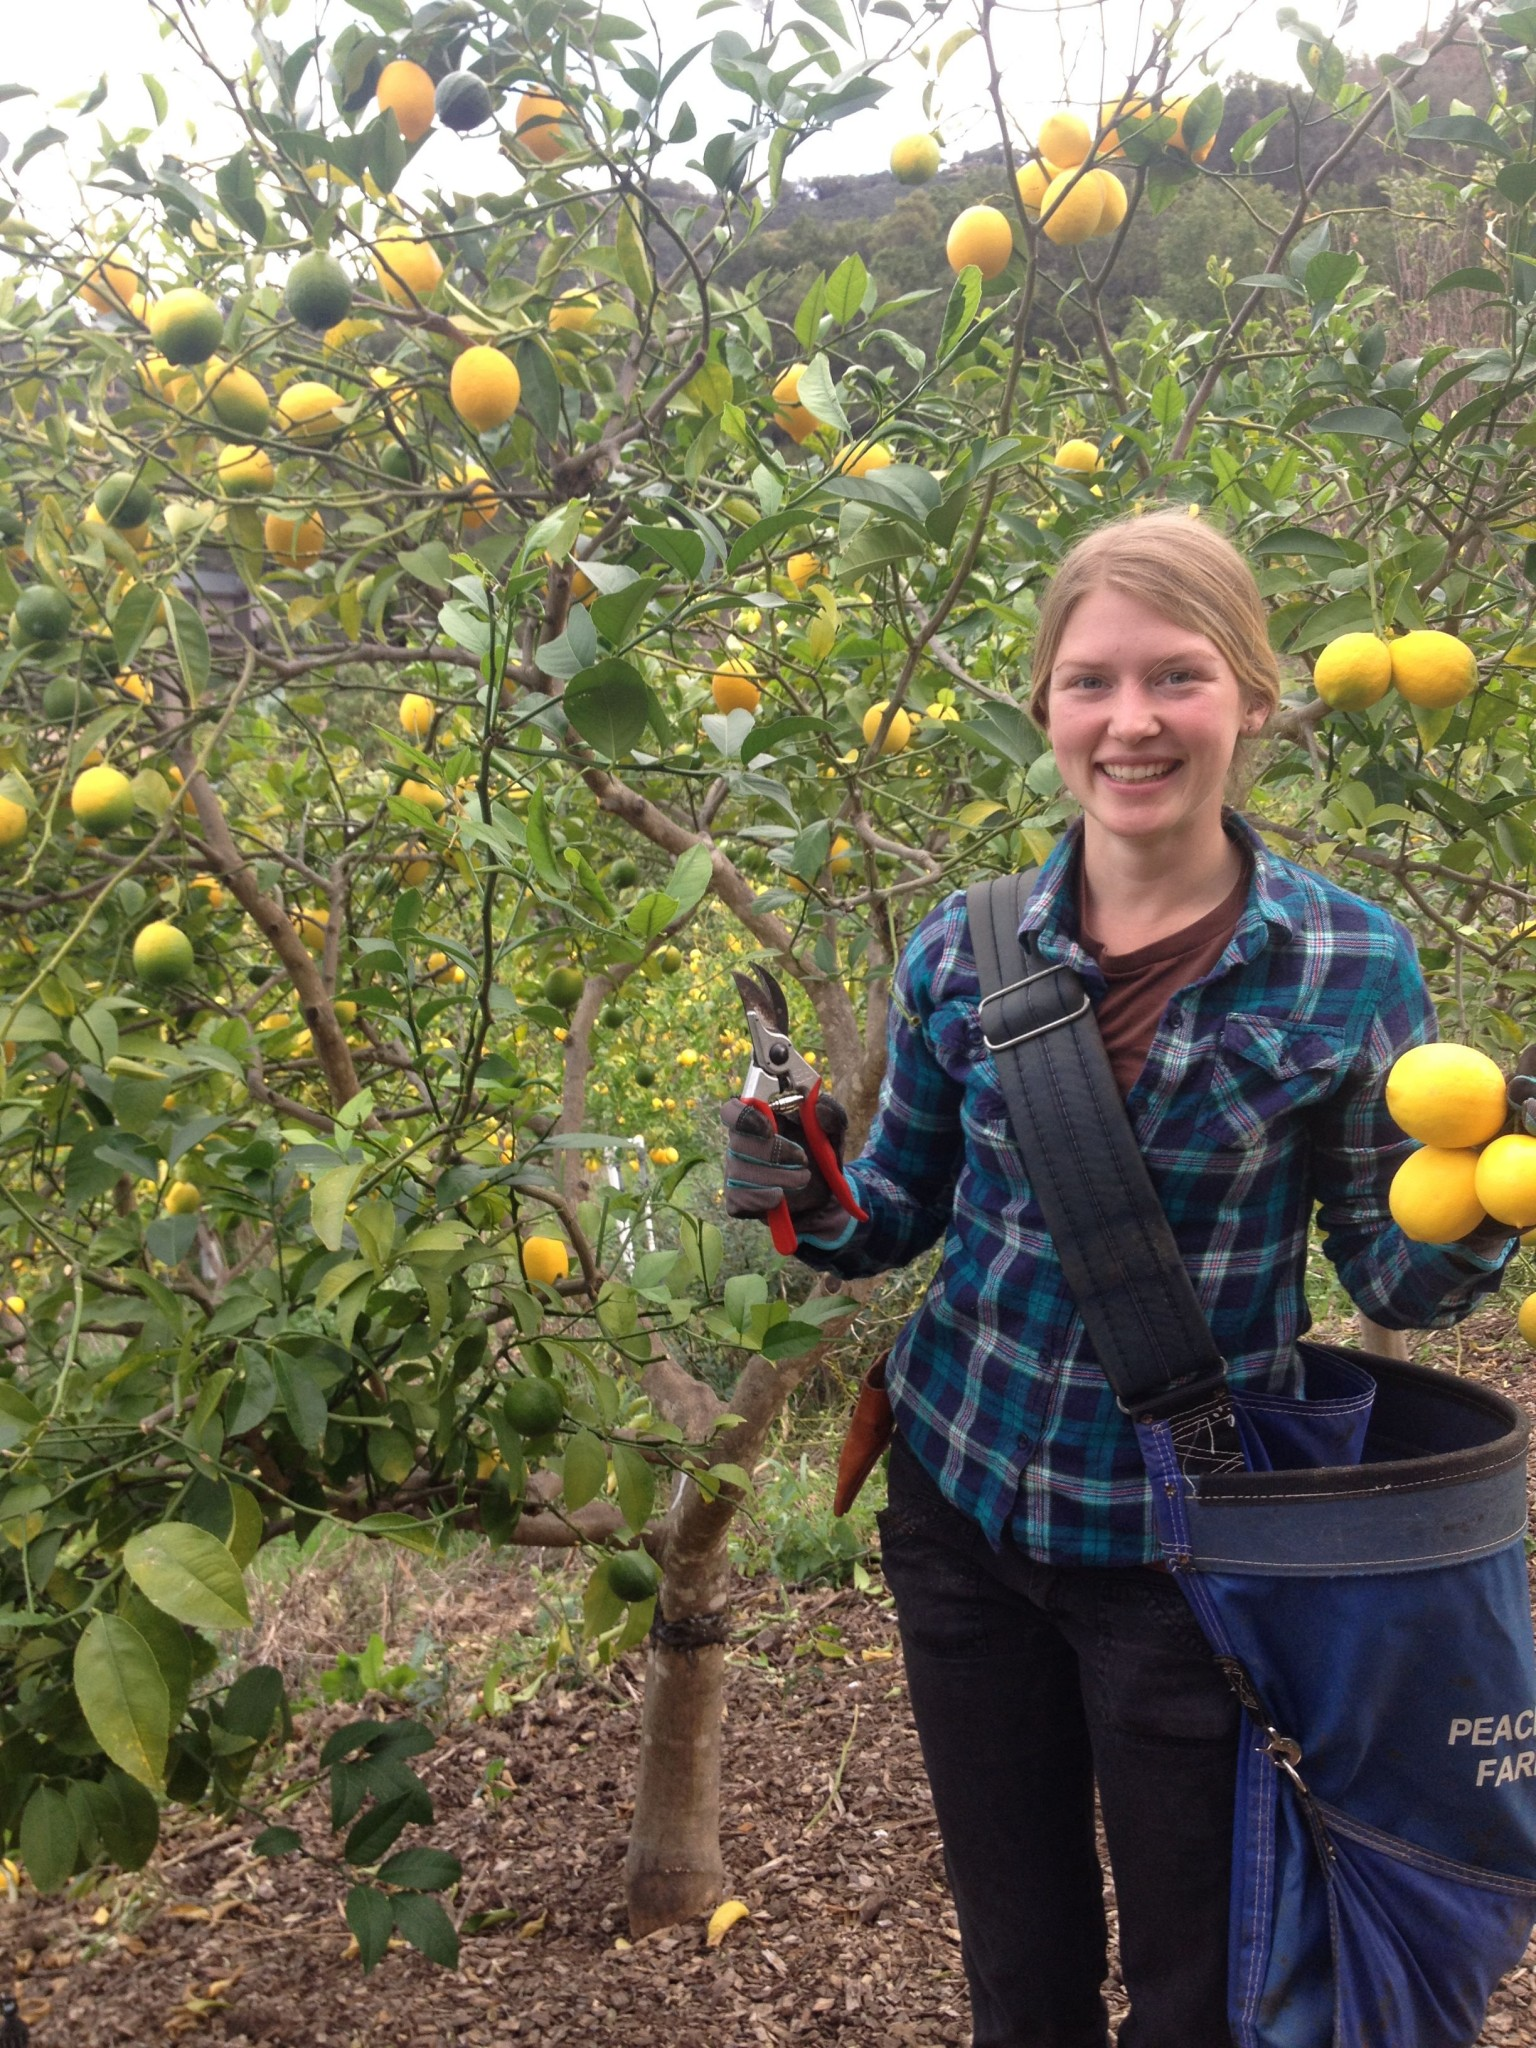 Young woman wields clippers and lemons in an orchard.